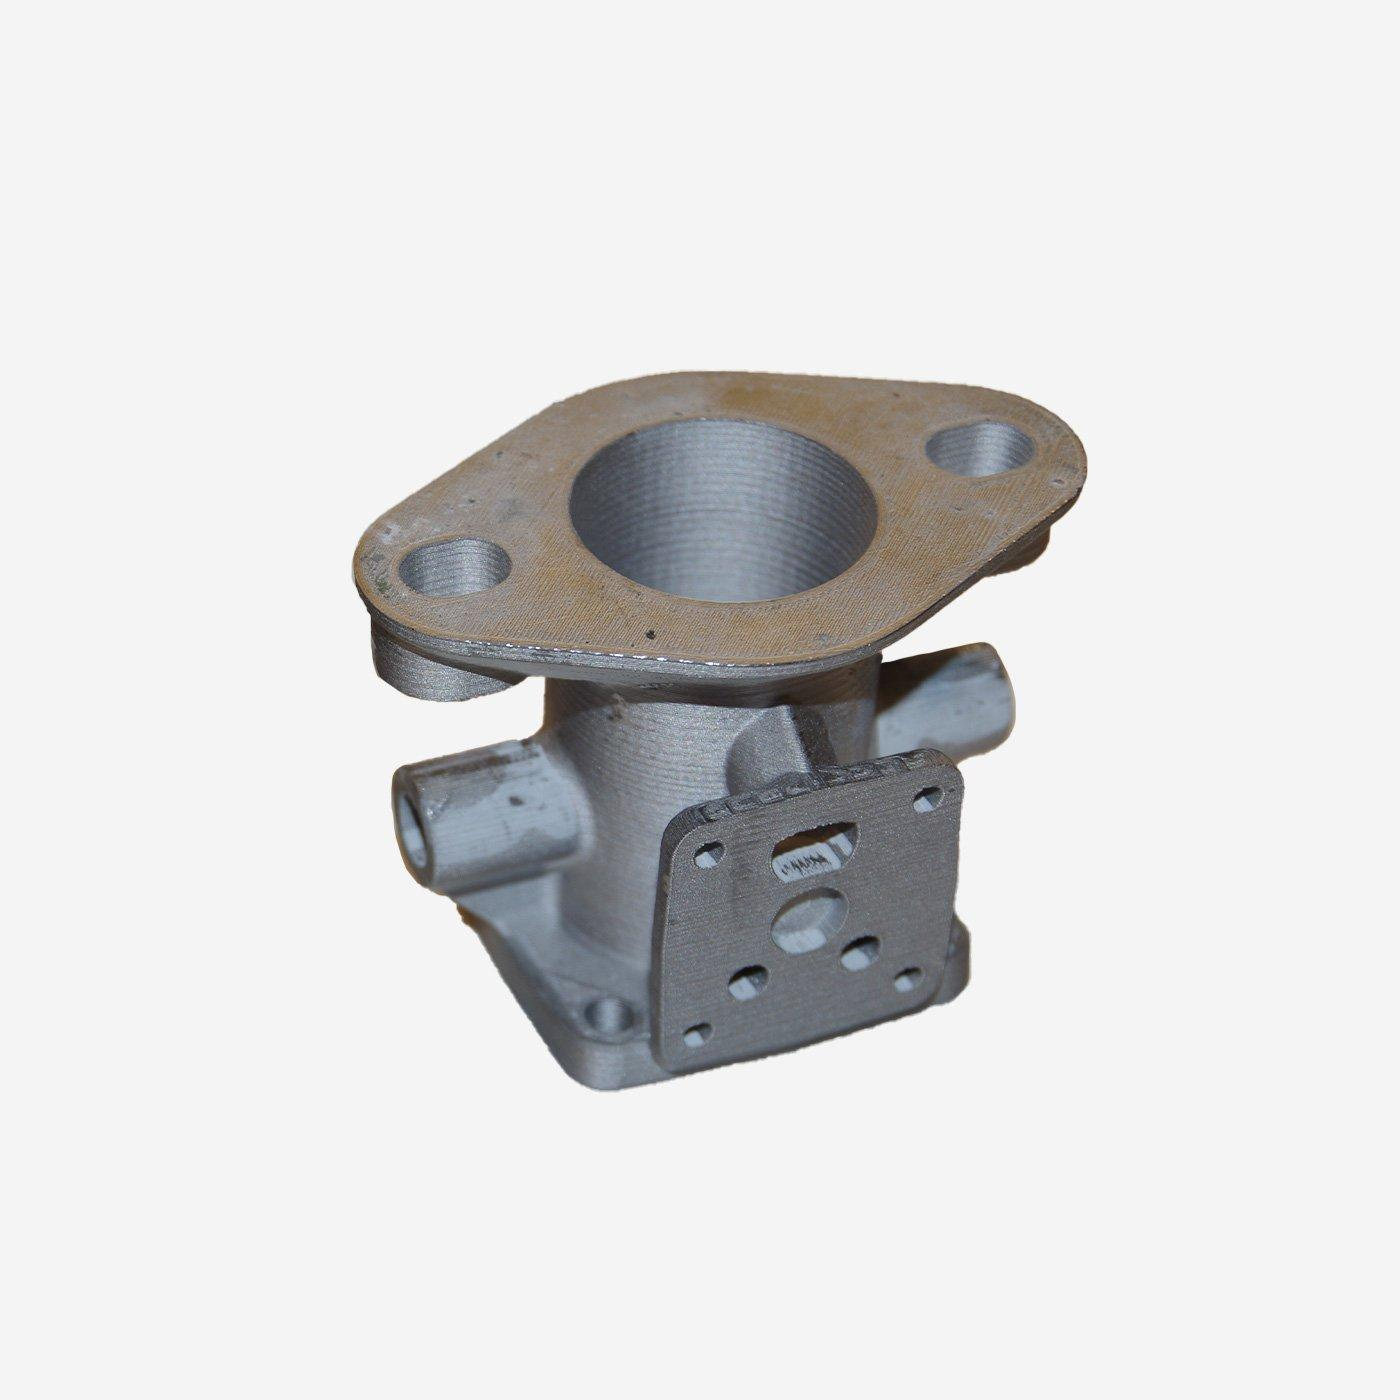 Replica Carburetor